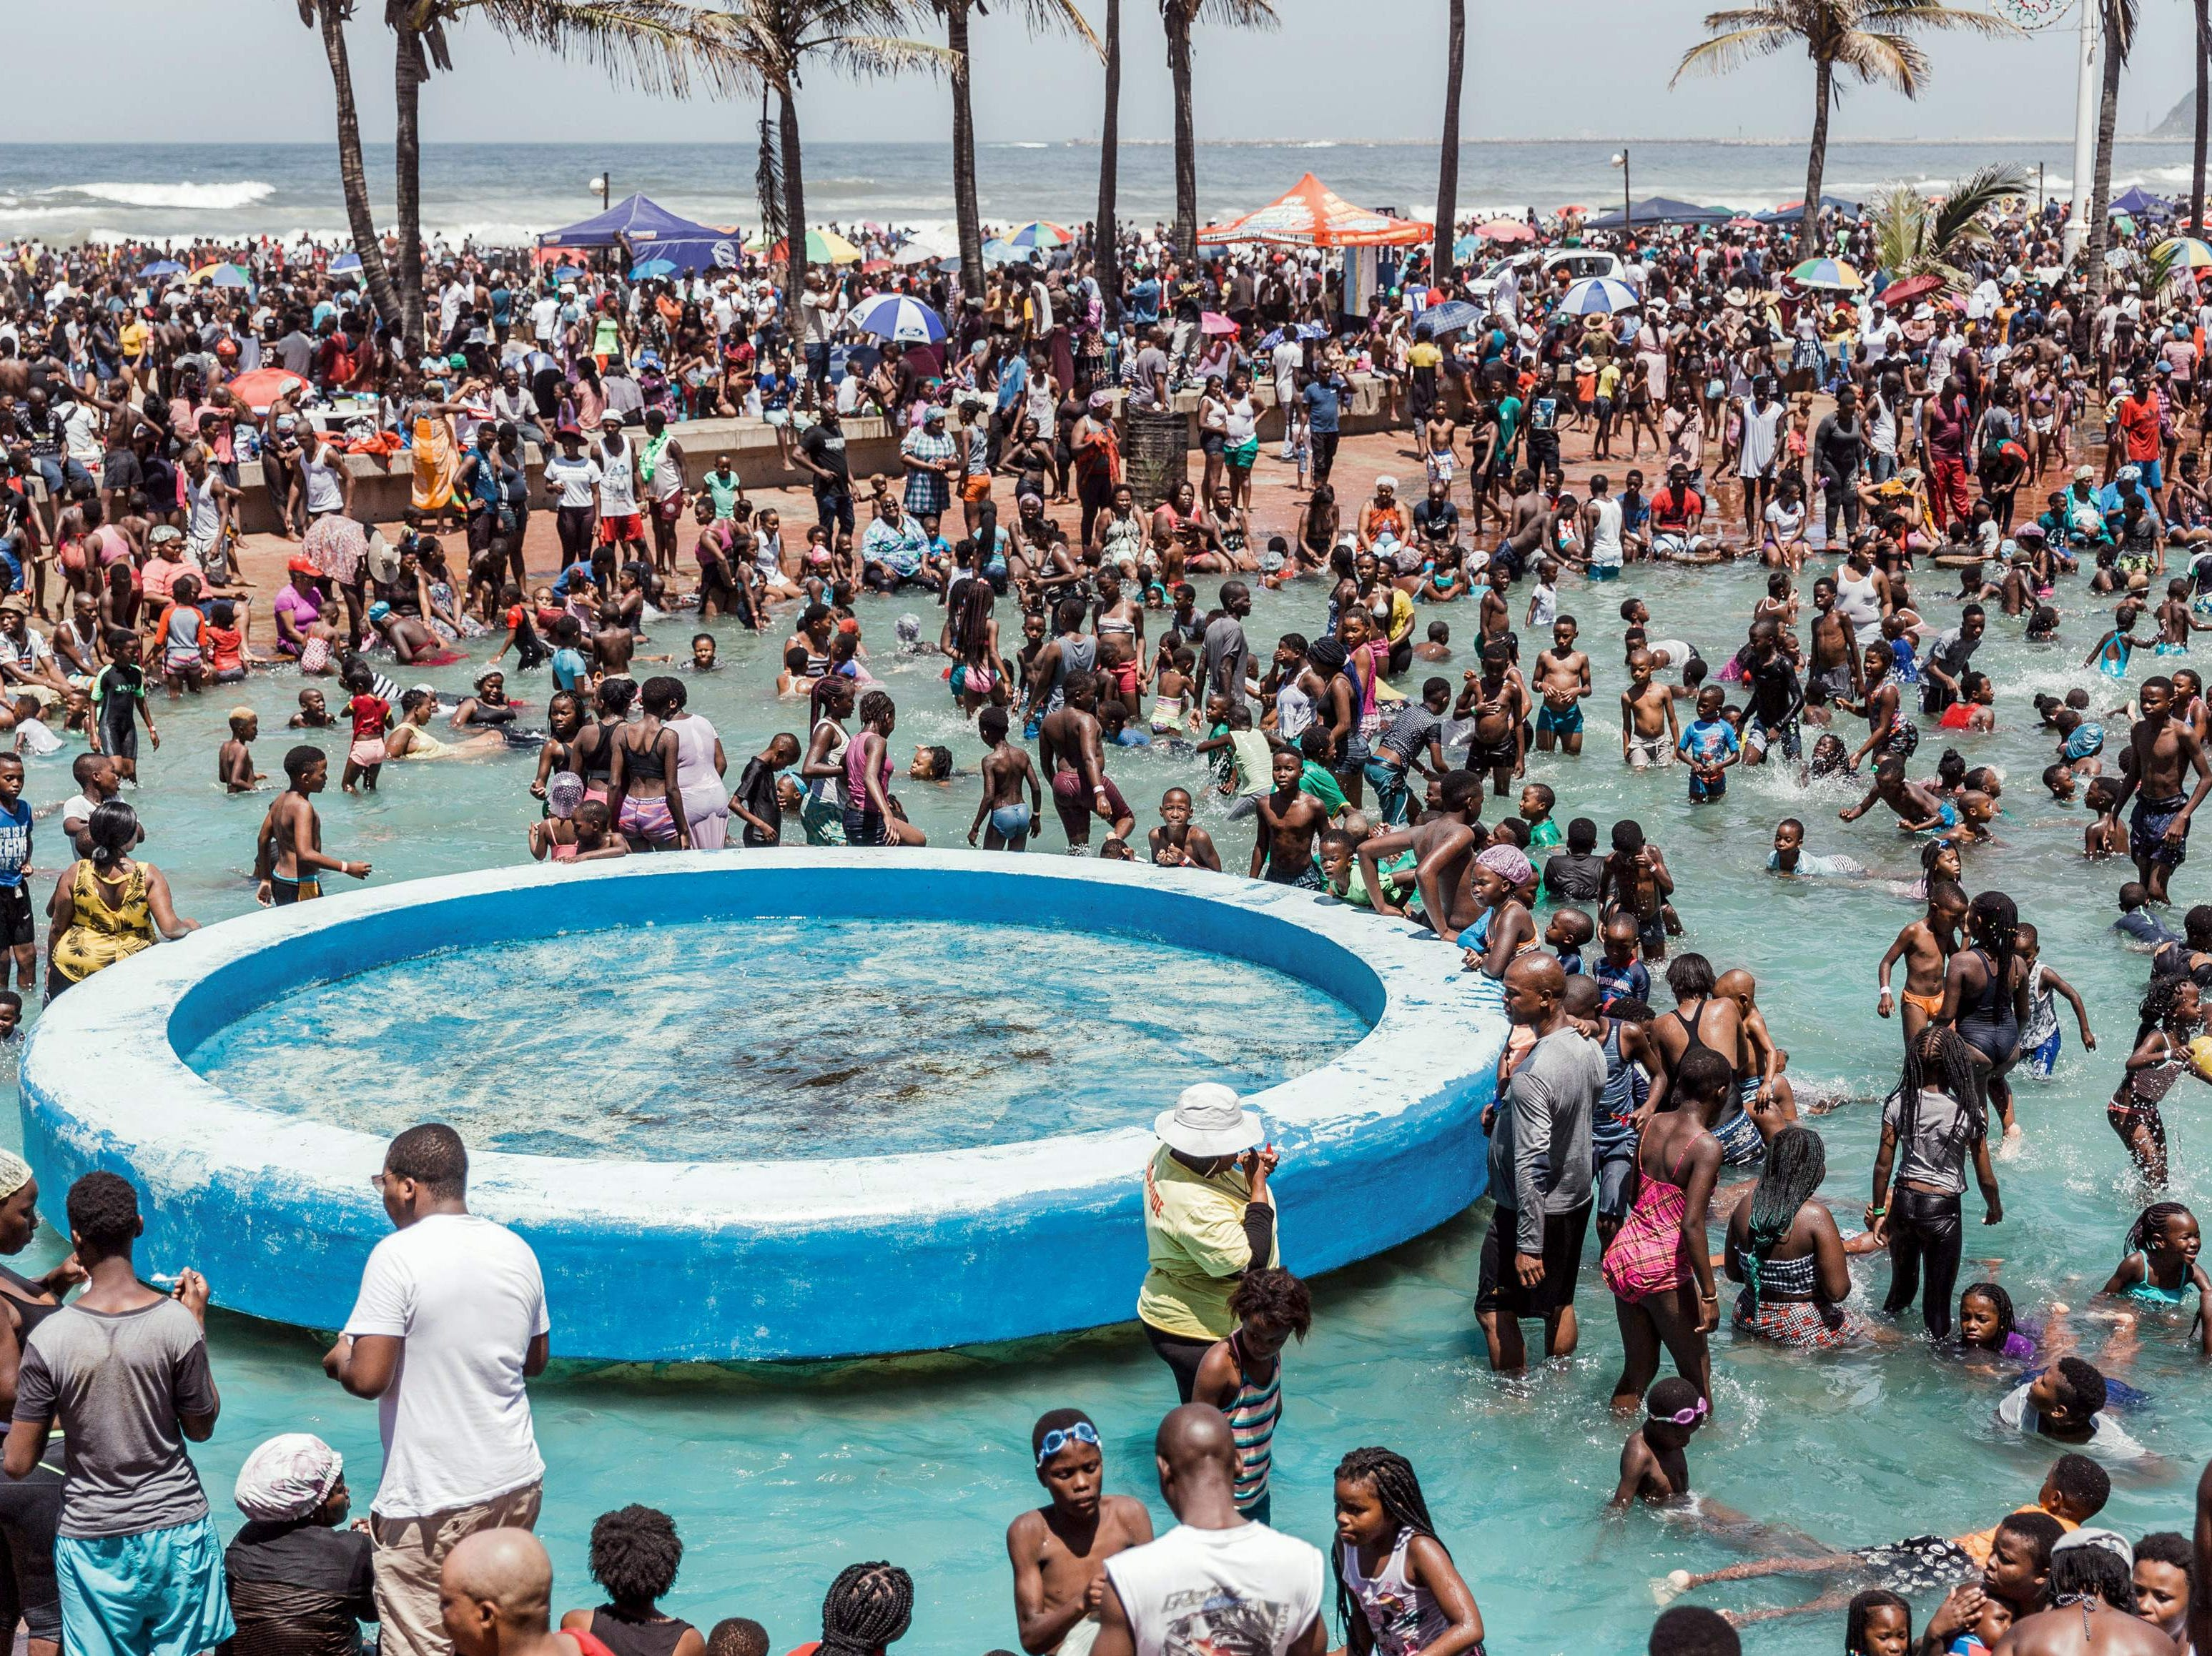 Thousands of revelers and holiday makers gather at the North Pier Beach during New Year Celebrations in Durban on Jan. 1, 2019. According to the police close to 100,000 people are expected to spend the day at the beach. The city situated on the east coast of the African Continent attracts thousands of local and international tourists boosting the local economy at this time of the year.